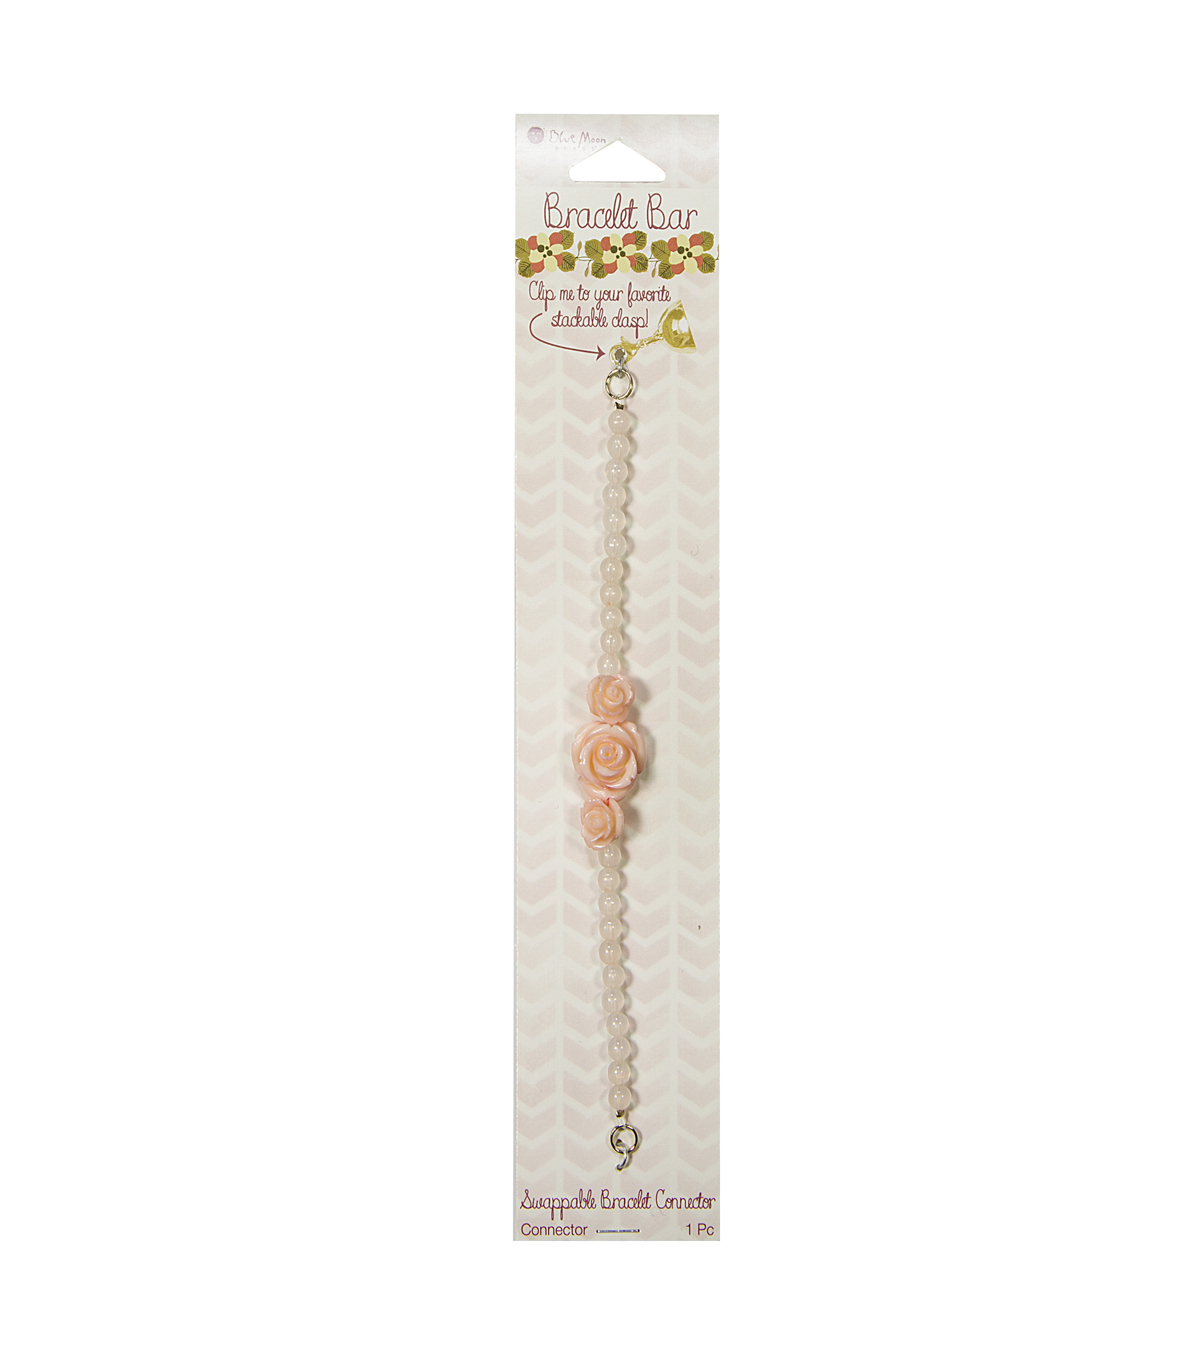 Bracelet Bar Connector Light Pink Beads with Peach Carved Roses